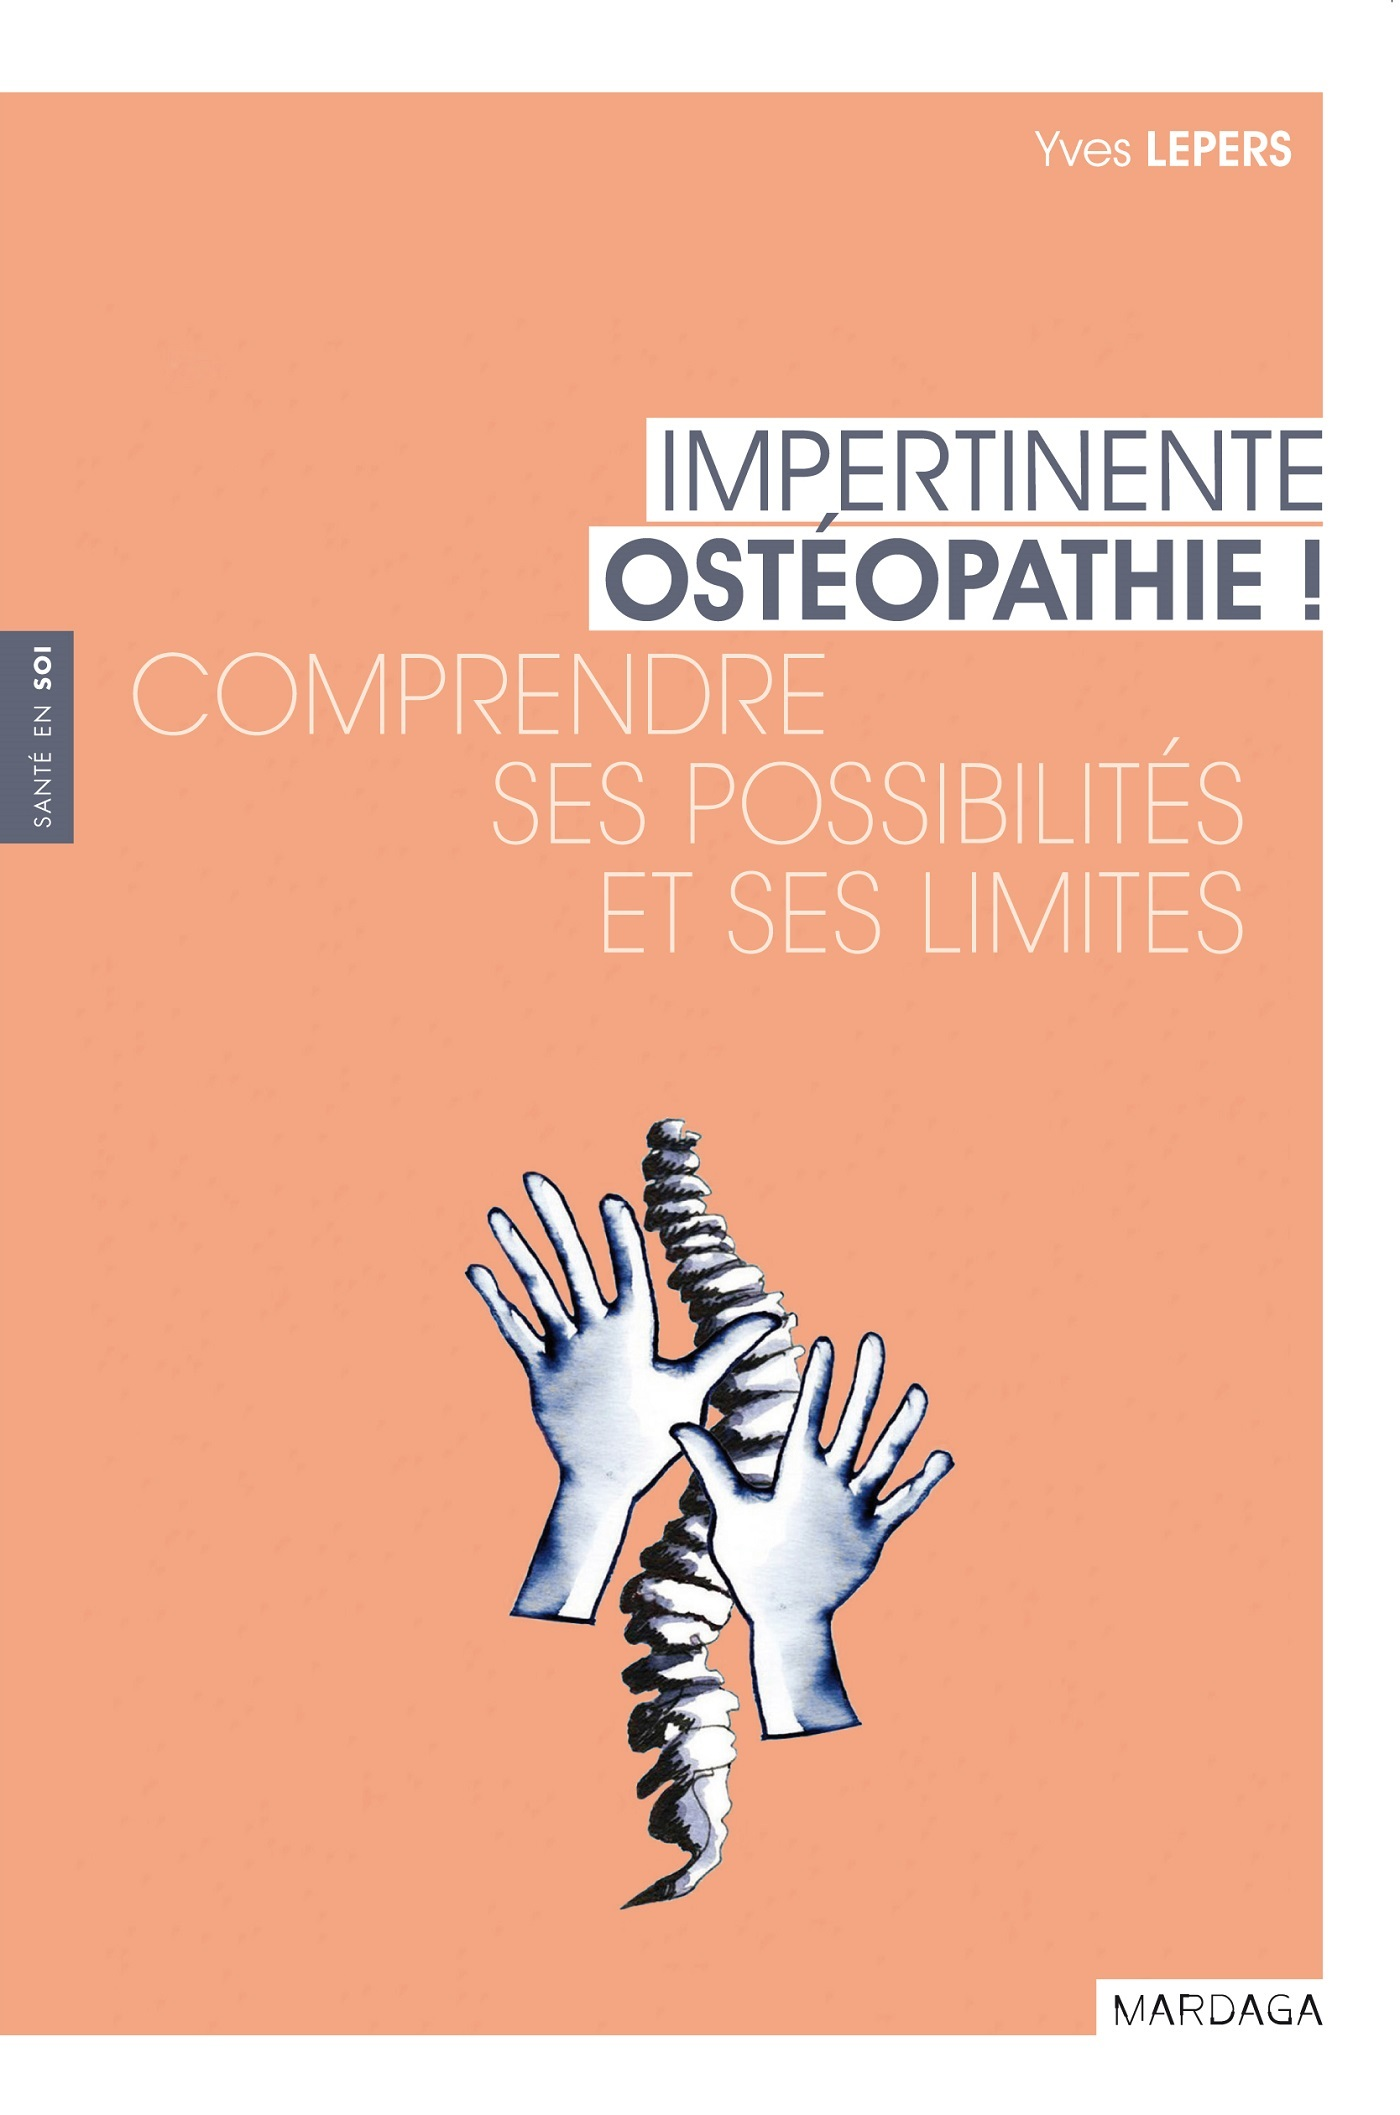 IMPERTINENTE OSTEOPATHIE !